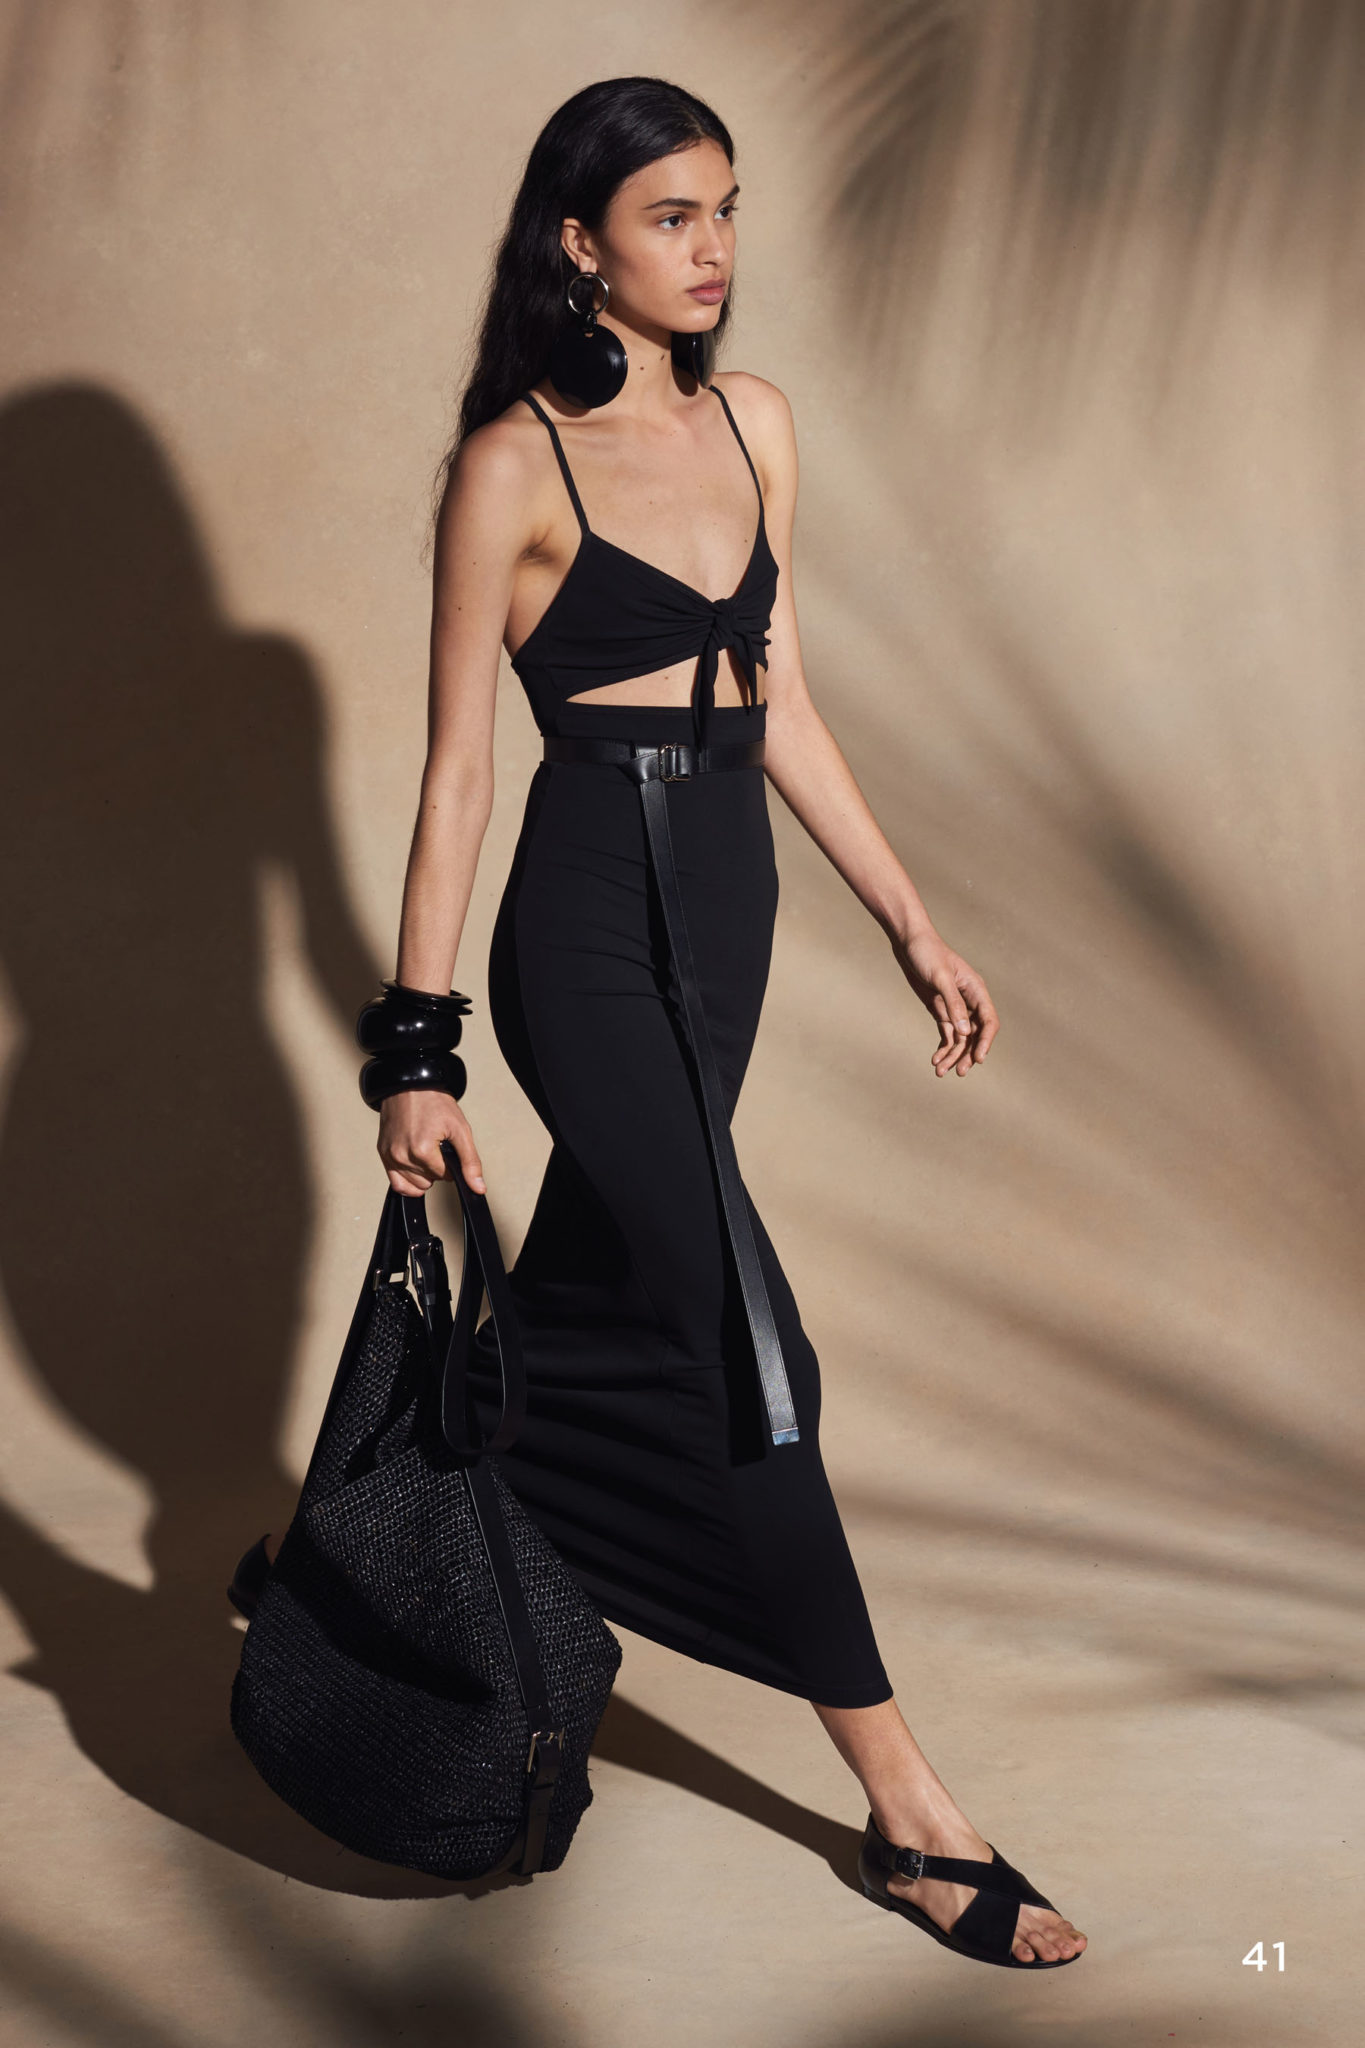 michael kors summer beach vibes all black resort 2018 long skirt crop top wraparound givenchy sandals leather 9